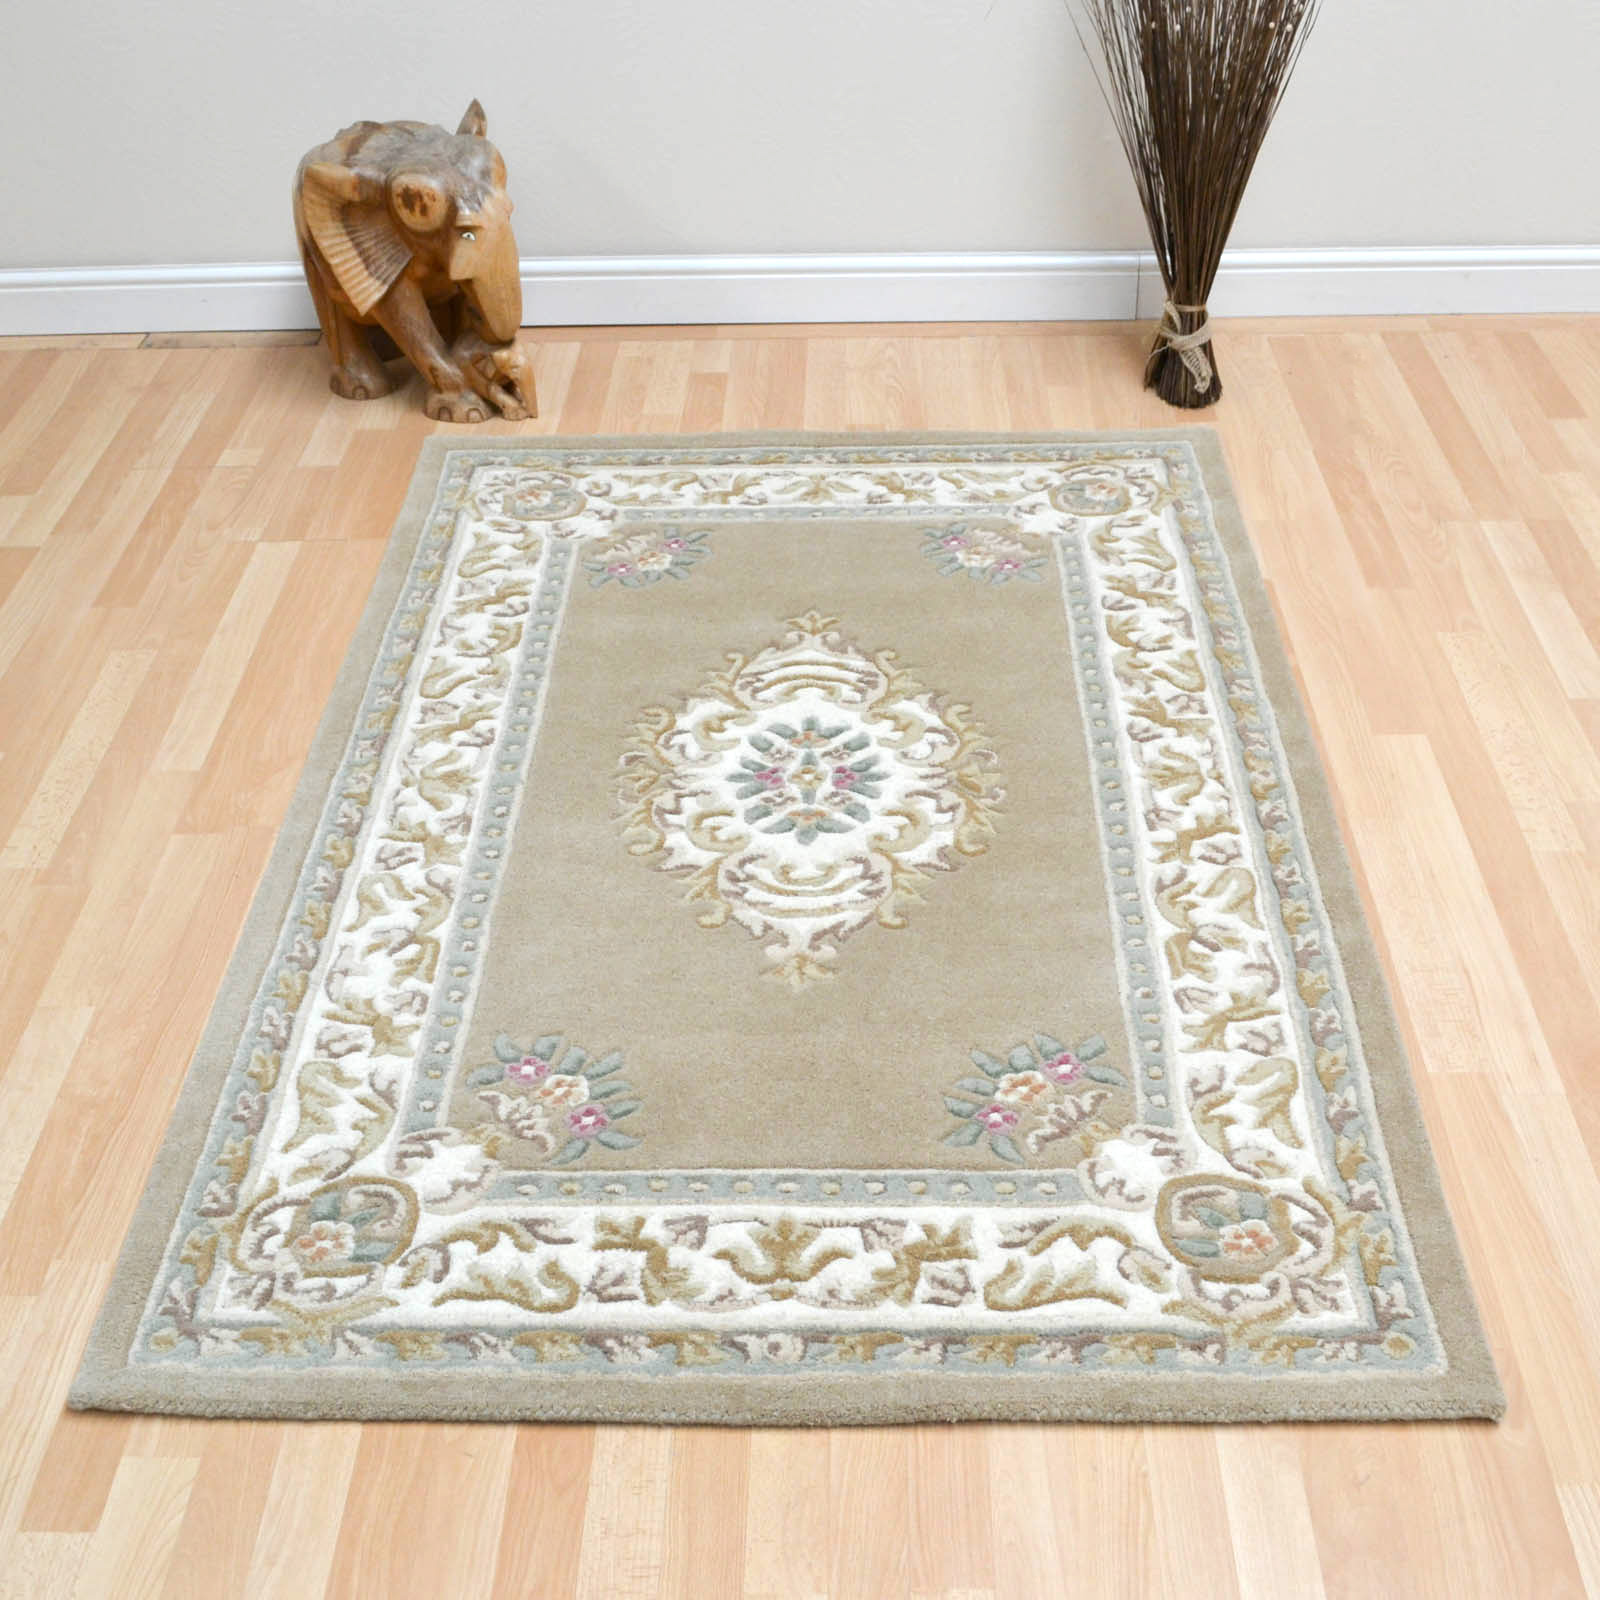 Rajbik Rugs in Beige